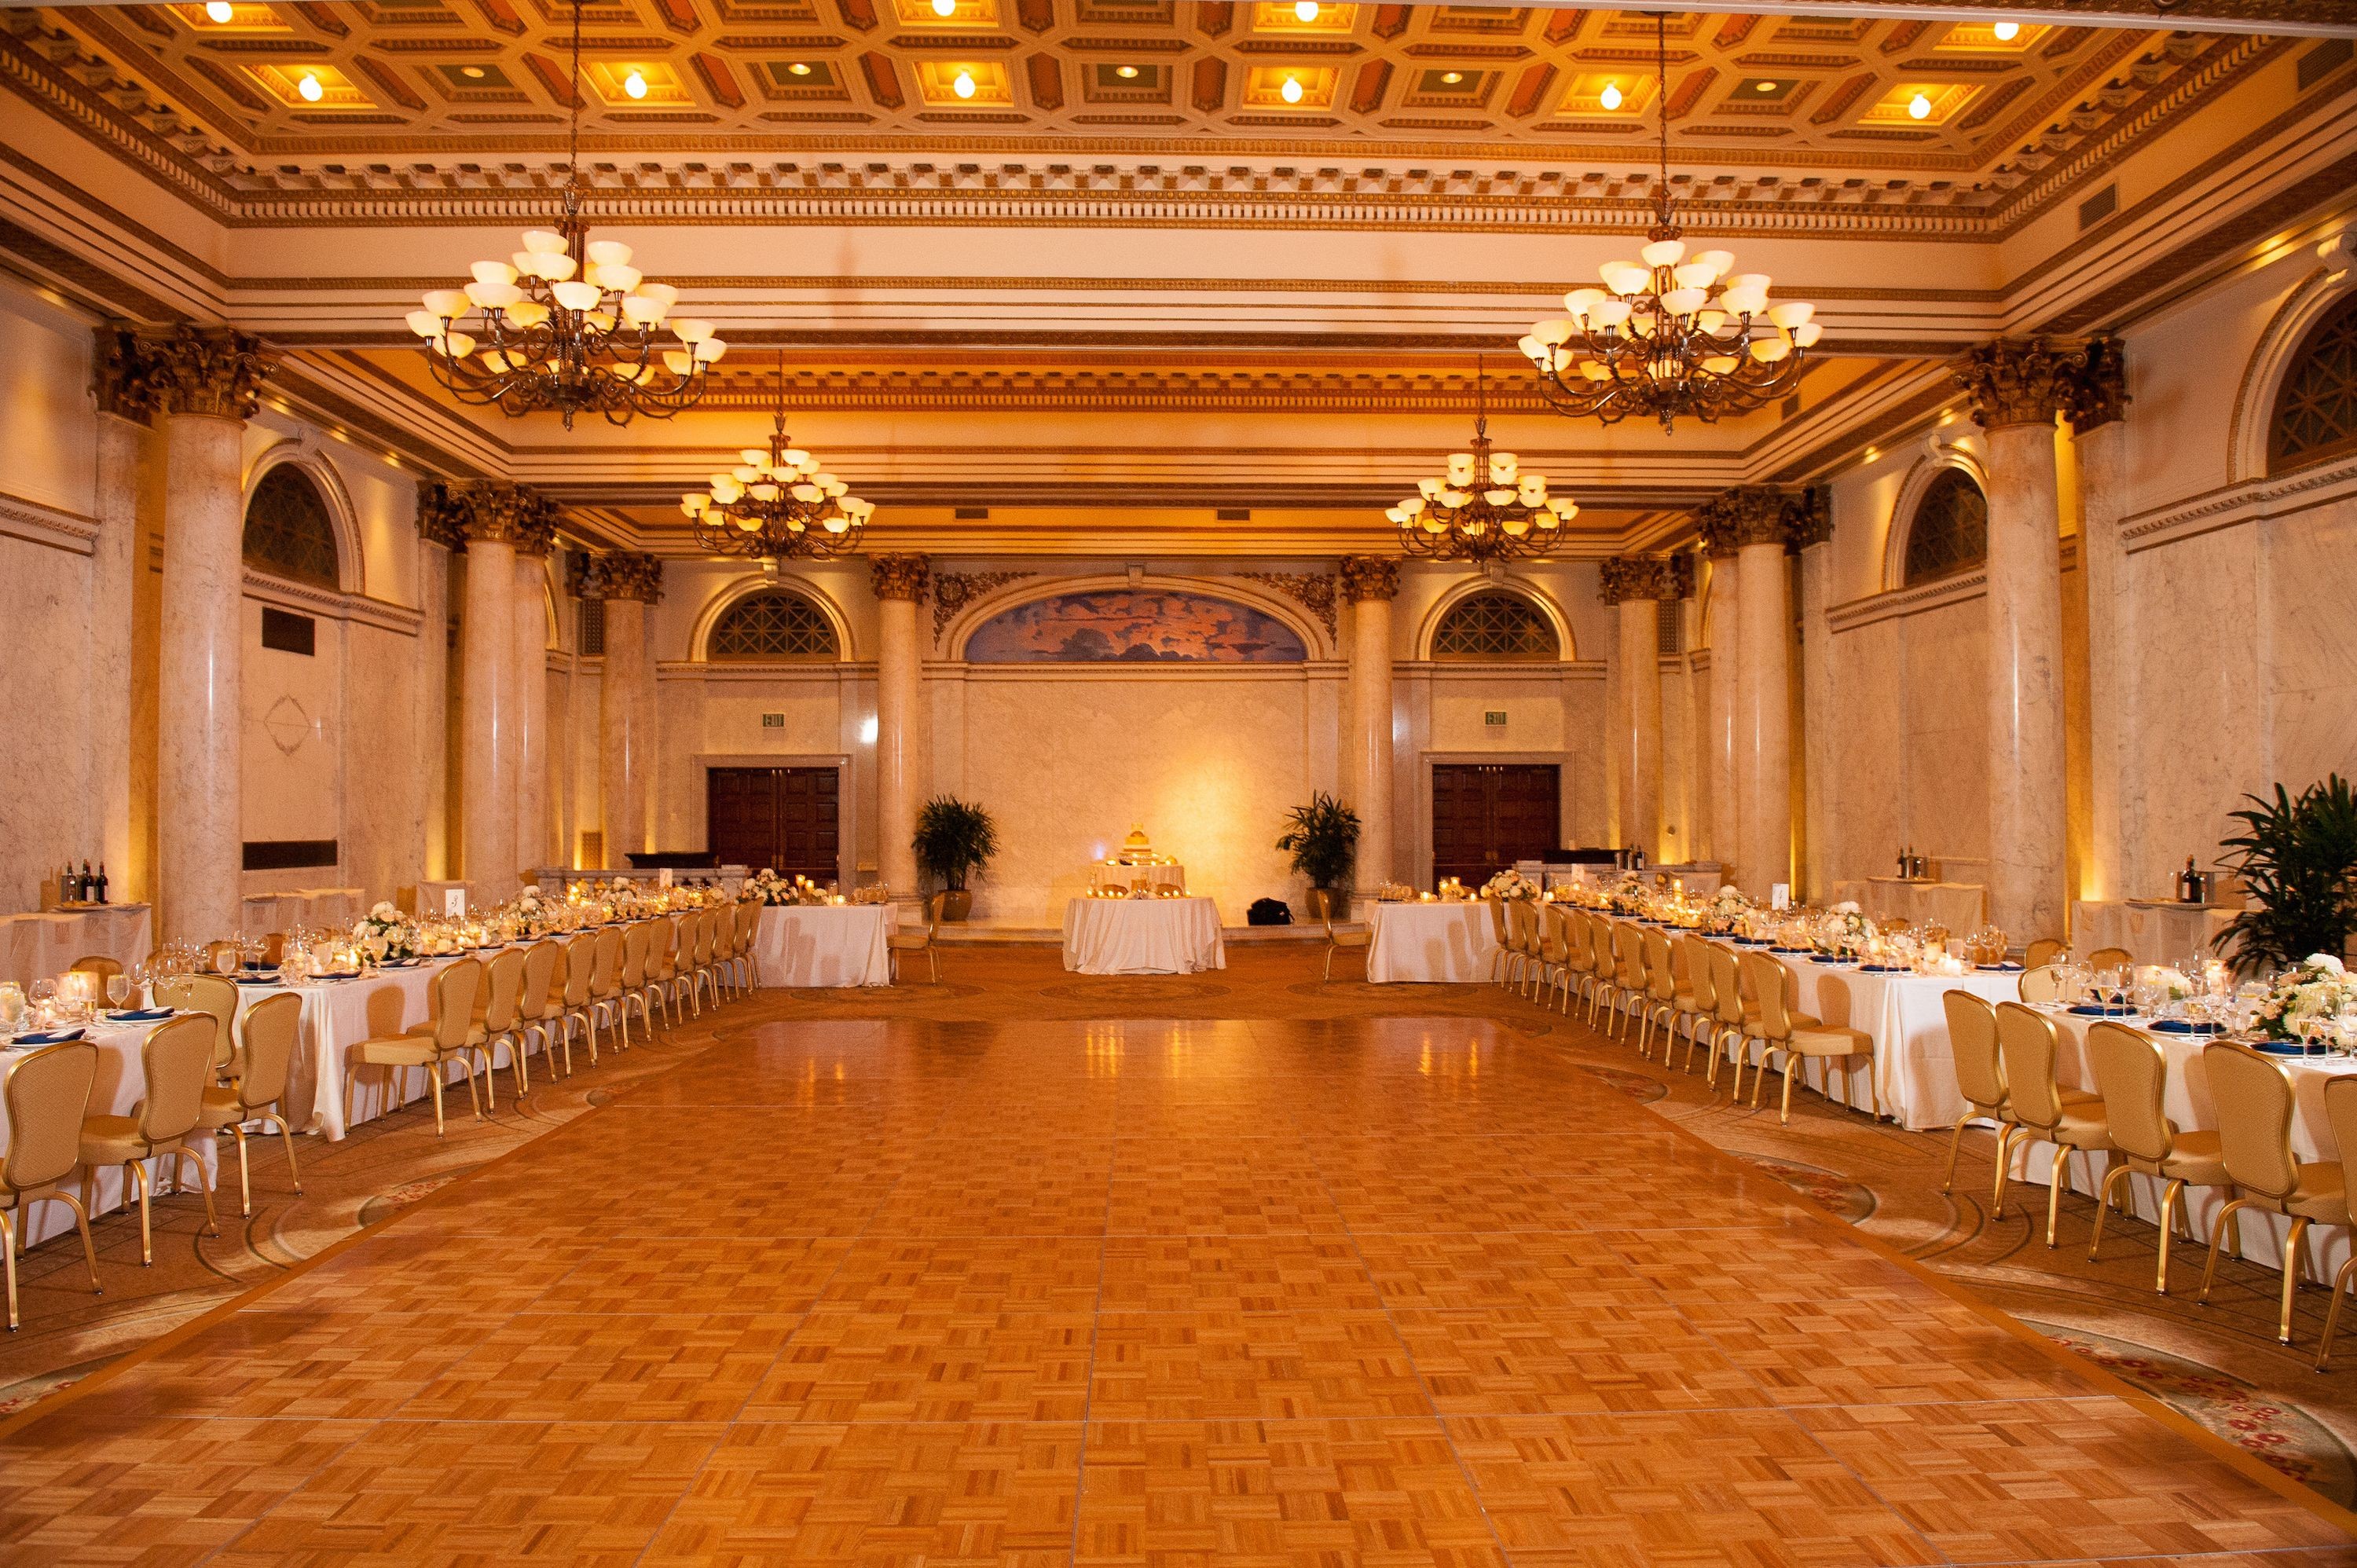 Large Ornate Room Stock Photos &amp- Large Ornate Room Stock Images ...